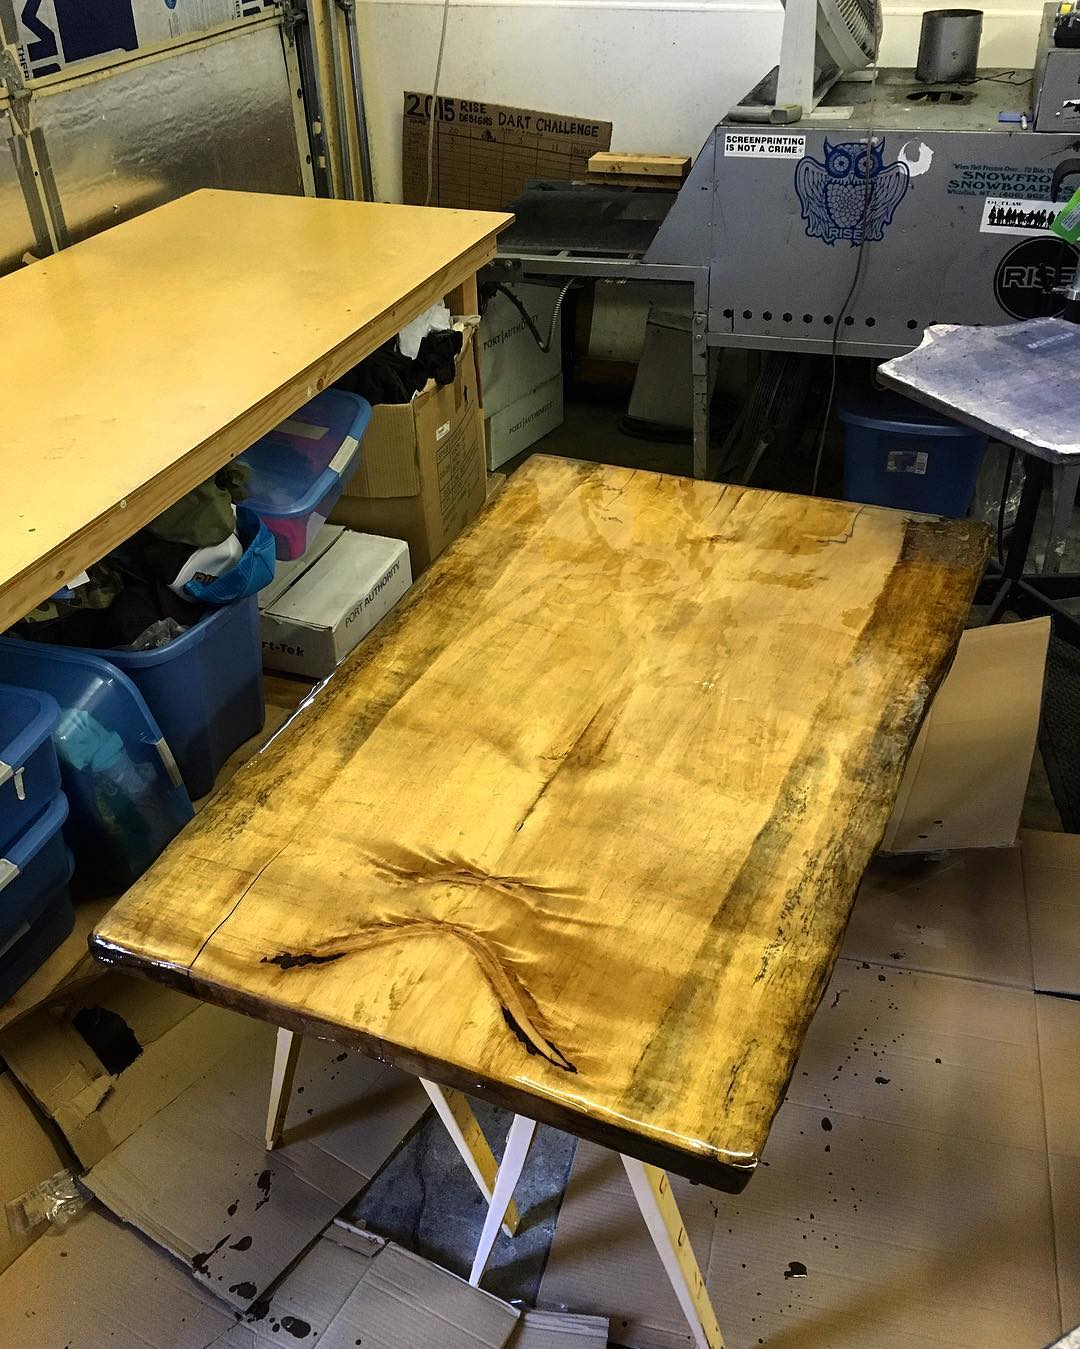 Sometimes personal projects happen in the shop. We finished early today, so I got some time to work on a dining room table for my home. This table is definitely nature inspired, just like our designs. #riseshop #woodworking #diningtable #bookmatch...